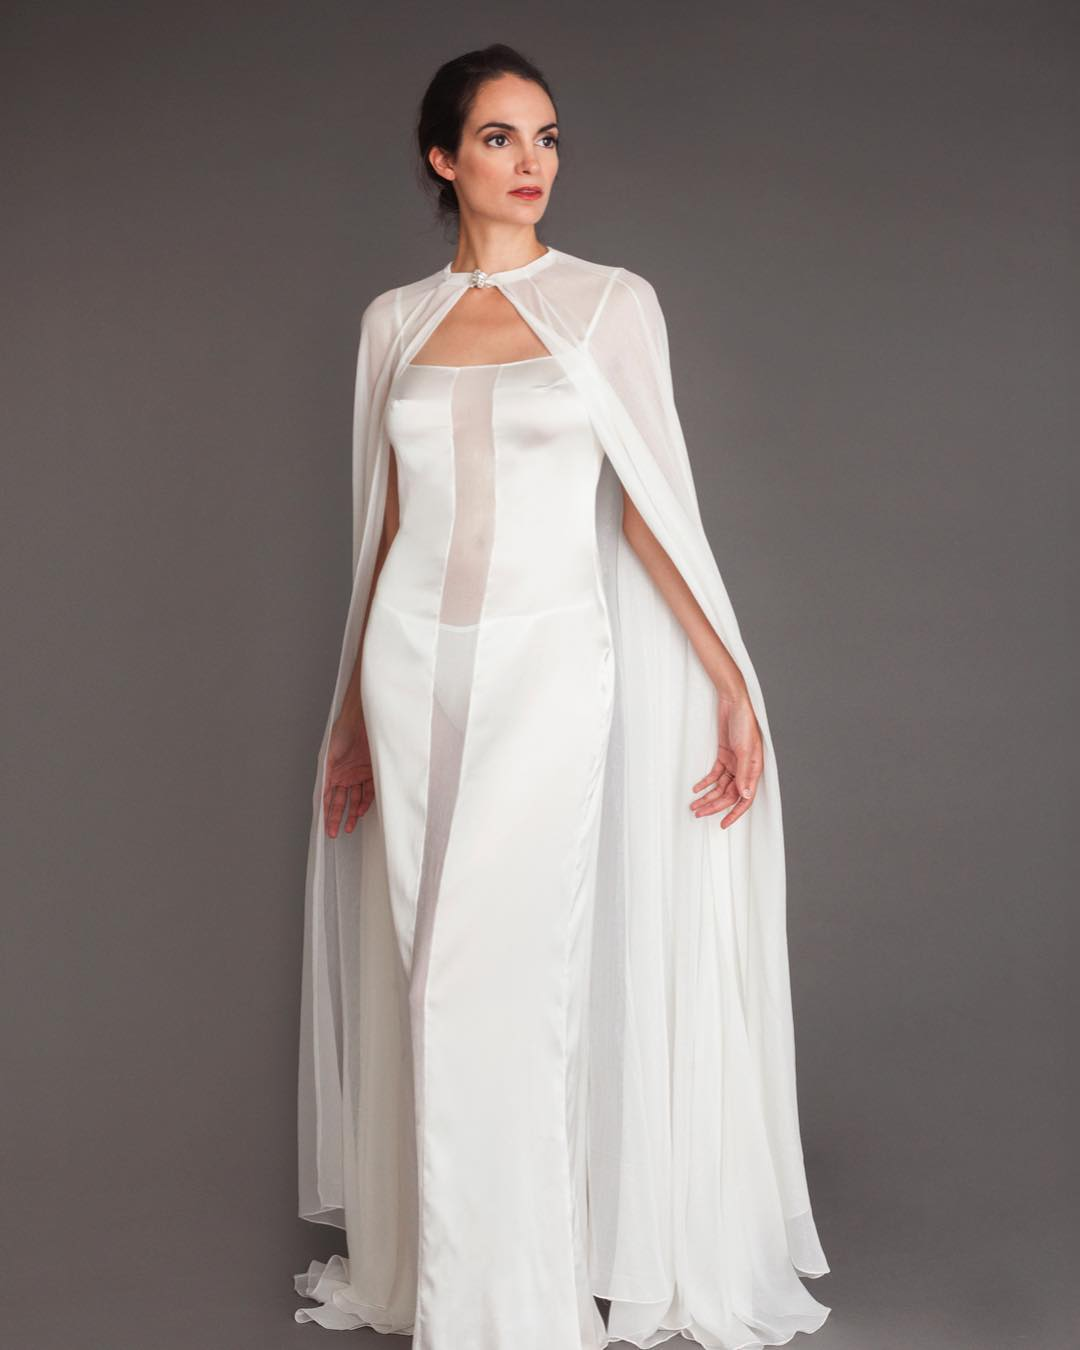 Wedding capes is a new 2020 bridal trend